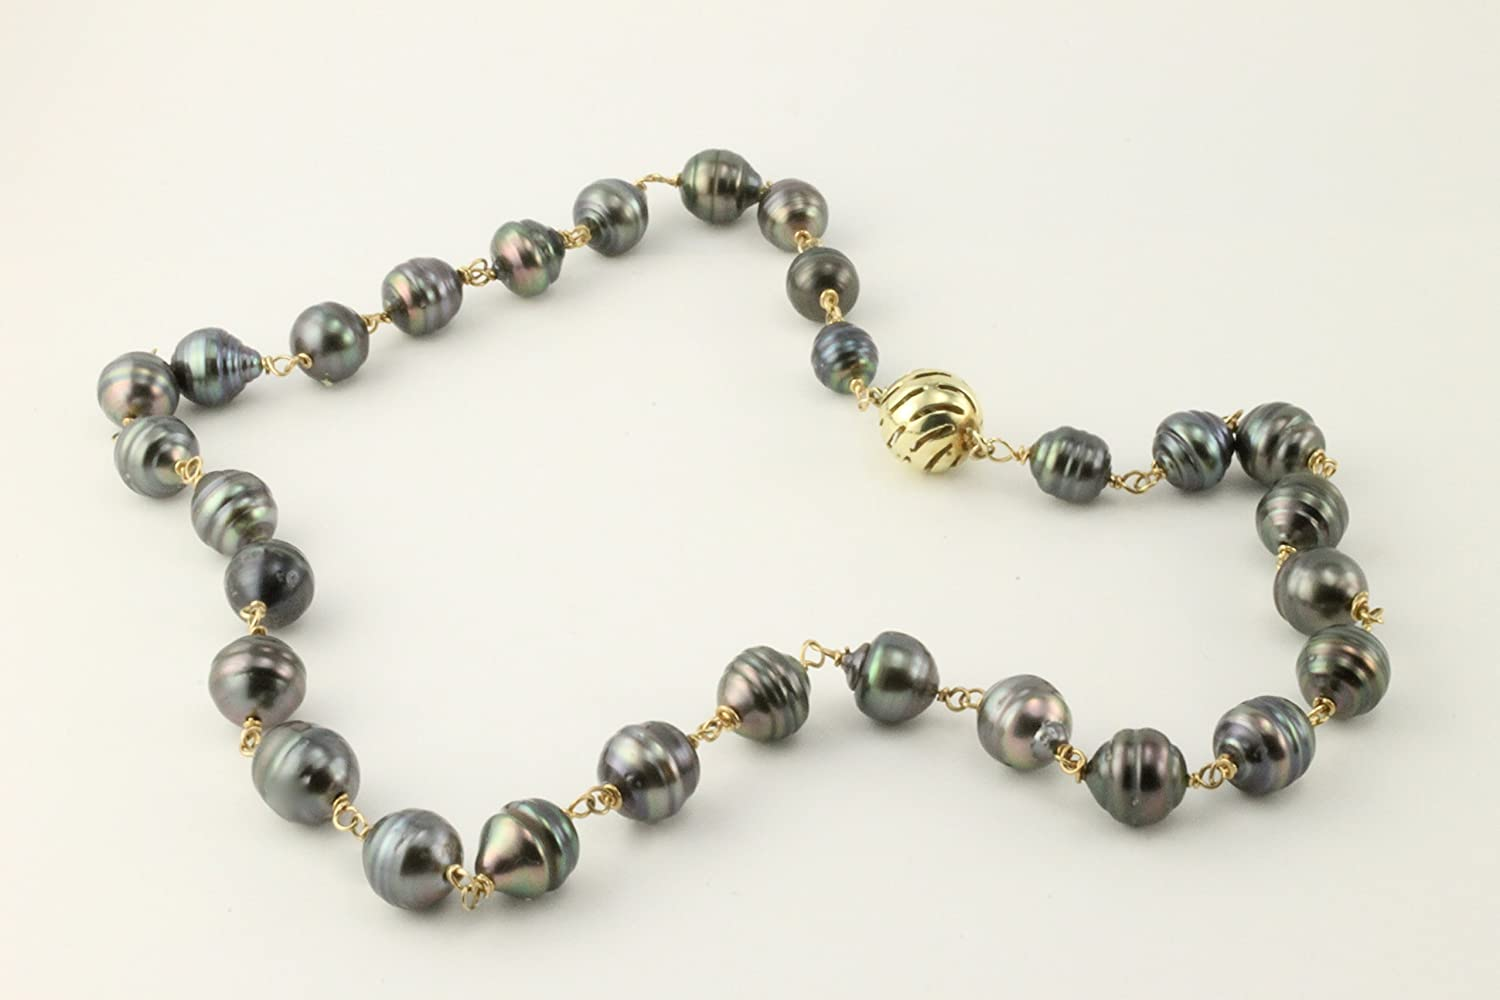 South Finally resale start Sea Black Pearl Necklace Gold Special price for a limited time